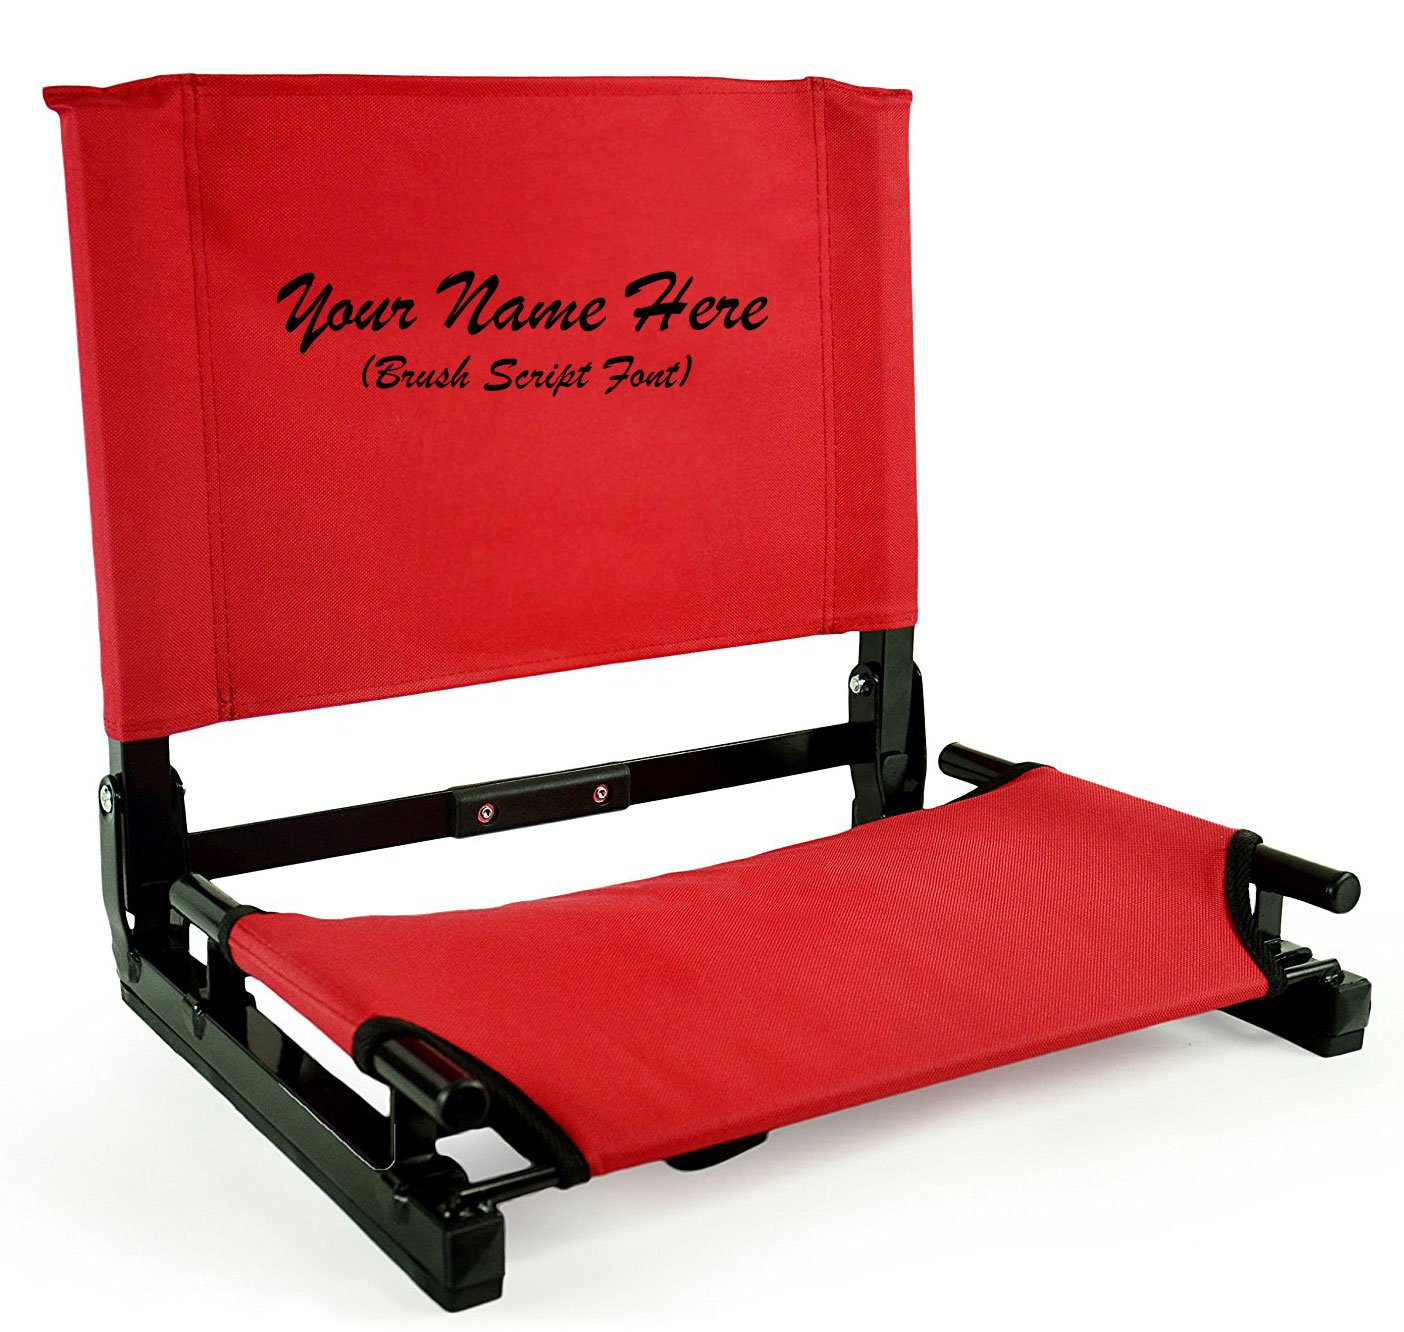 Personalized刺繍新しいStadium椅子Gamechanger Bleacher Seat with Optional Arms B01MQHCLV7 レッド レッド